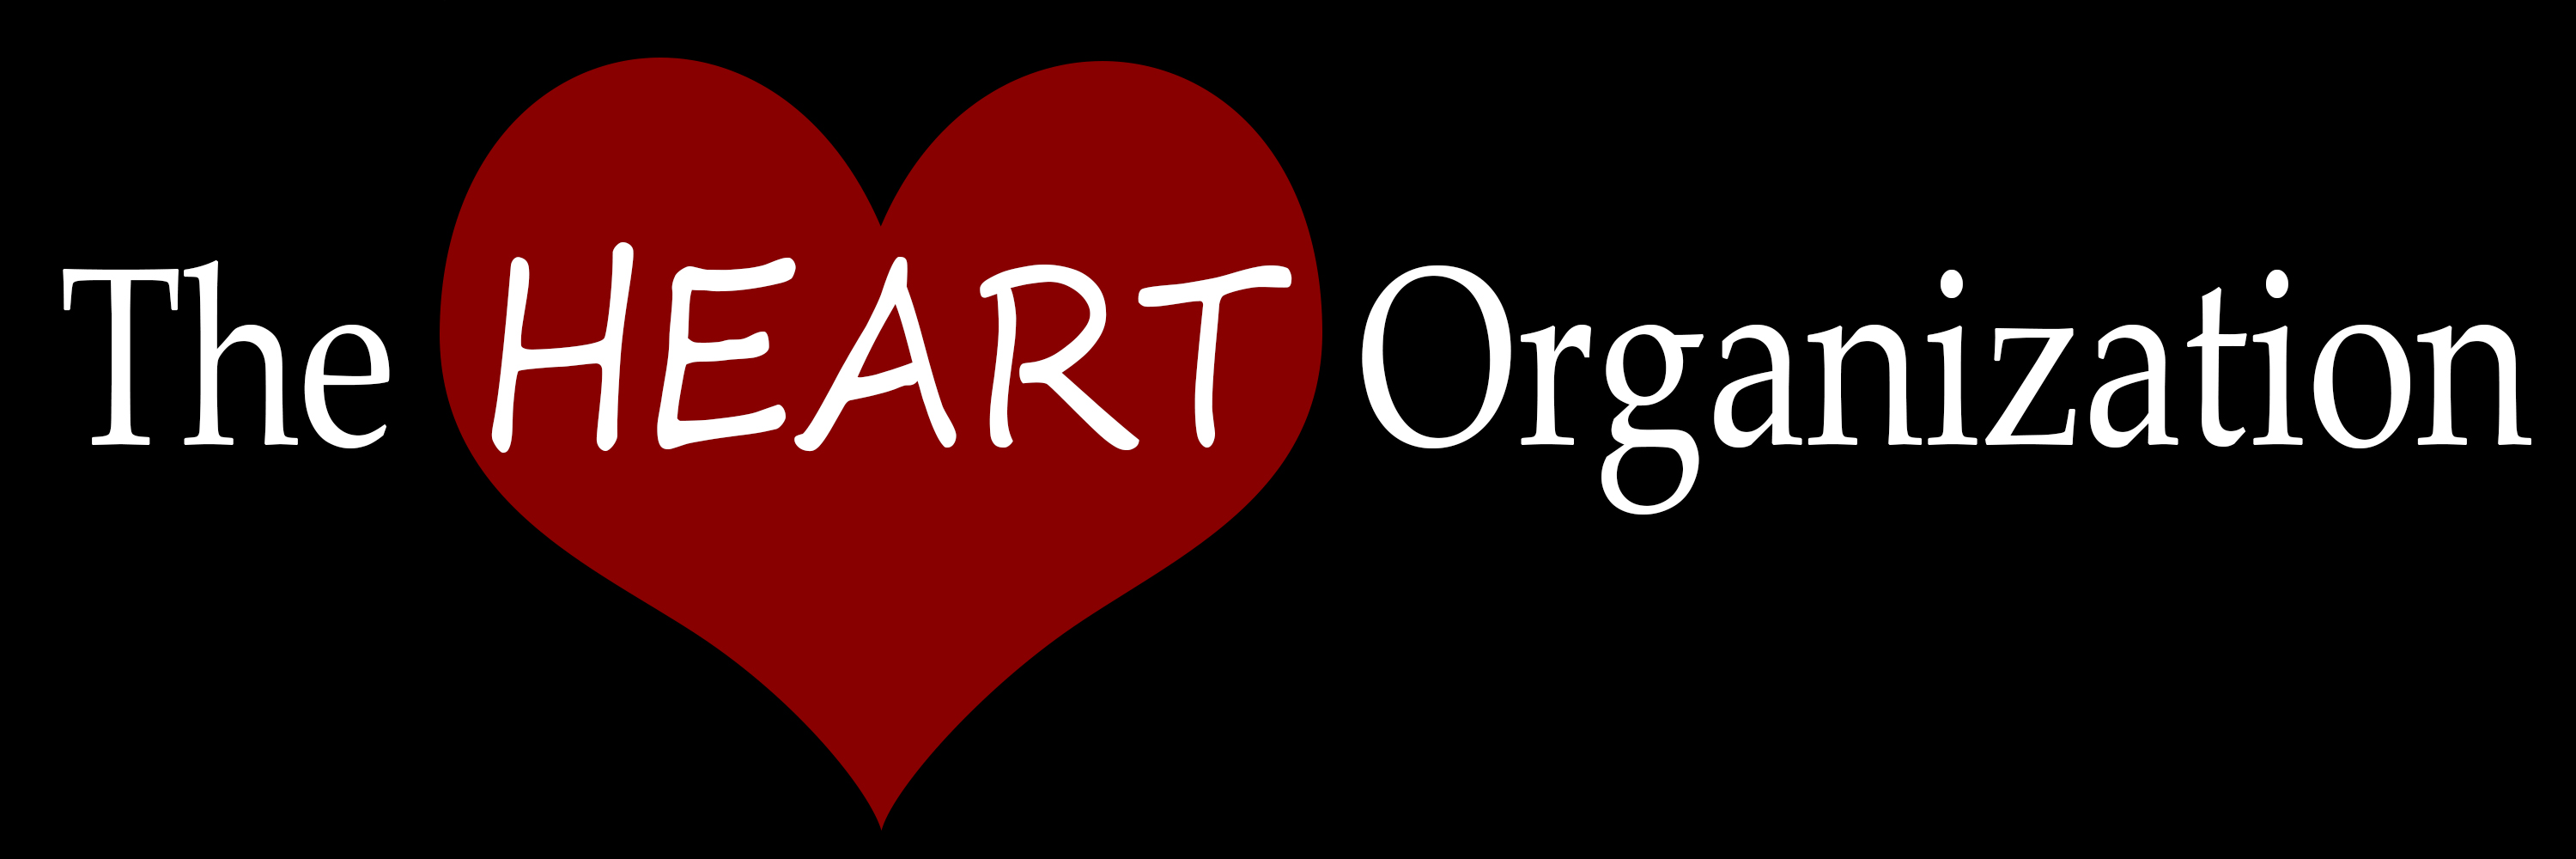 The HEART Organization